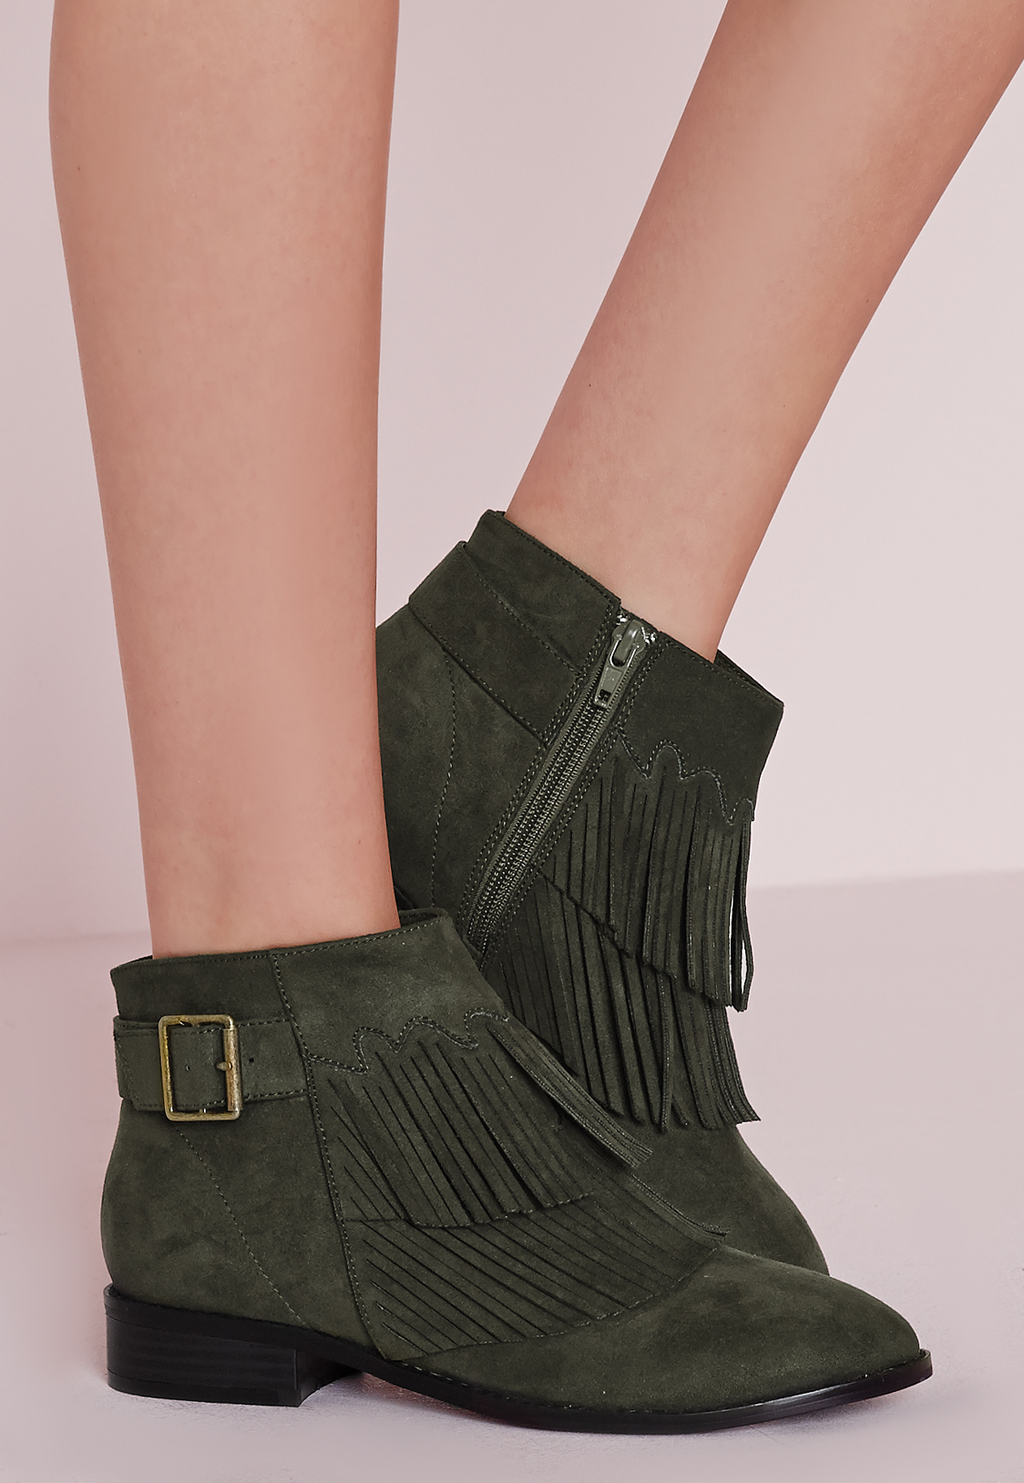 Tassel Front Ankle Boots Khaki, Beige - predominant colour: khaki; occasions: casual, creative work; material: suede; heel height: flat; embellishment: tassels; heel: standard; toe: round toe; boot length: ankle boot; style: cowboy; finish: plain; pattern: plain; season: s/s 2016; wardrobe: basic